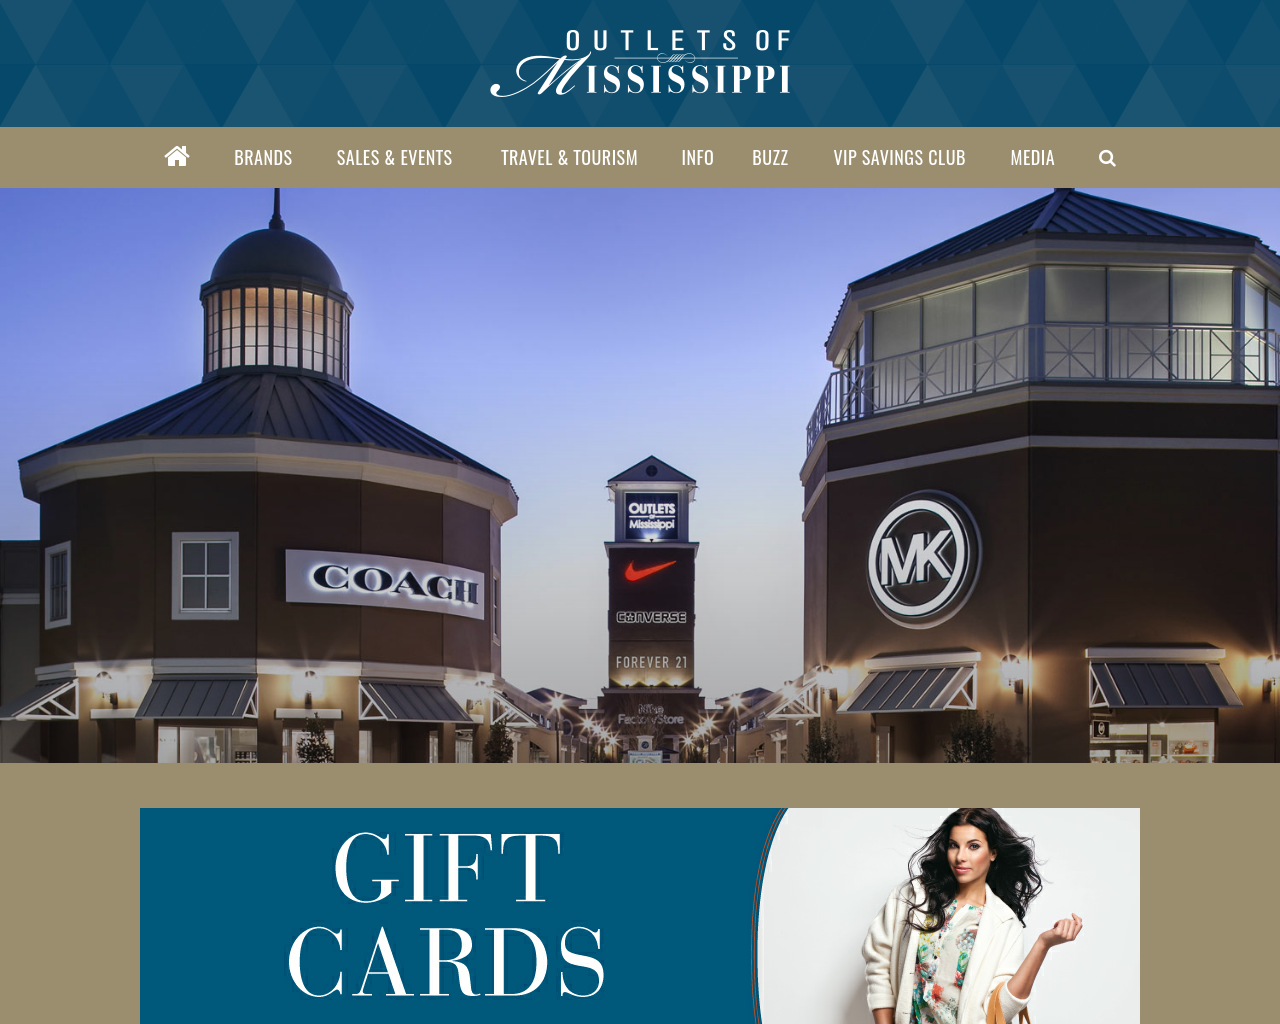 Outlets-of-Mississippi-Advertising-Reviews-Pricing